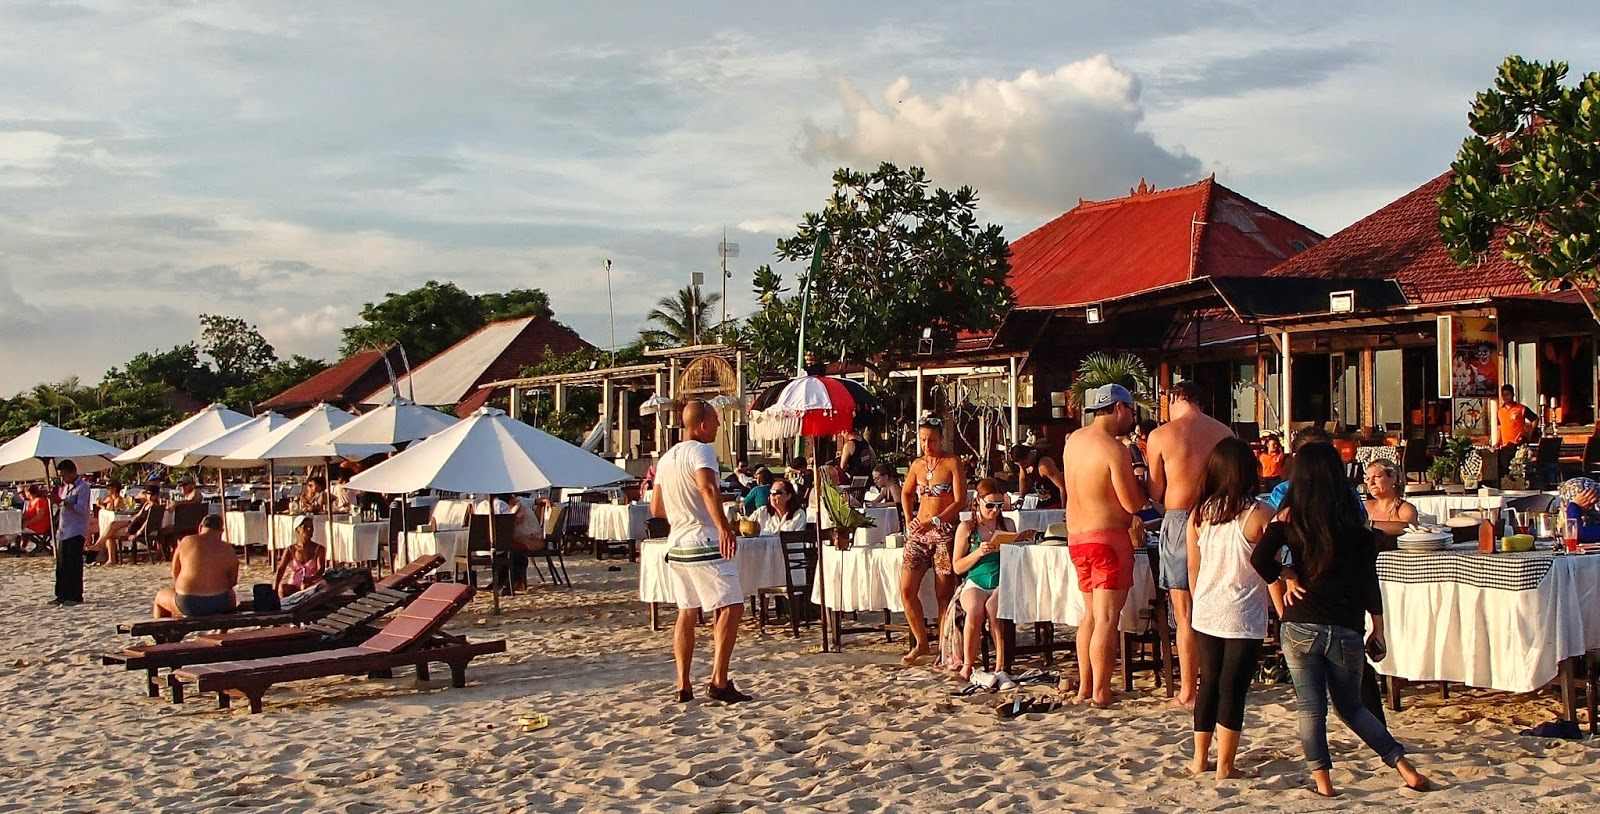 Thailand Bali And Other Beaches Islands Some Info On Paket Watersports Tanjung Benoa Include Lunch Plenty Going As Sunset Approaches